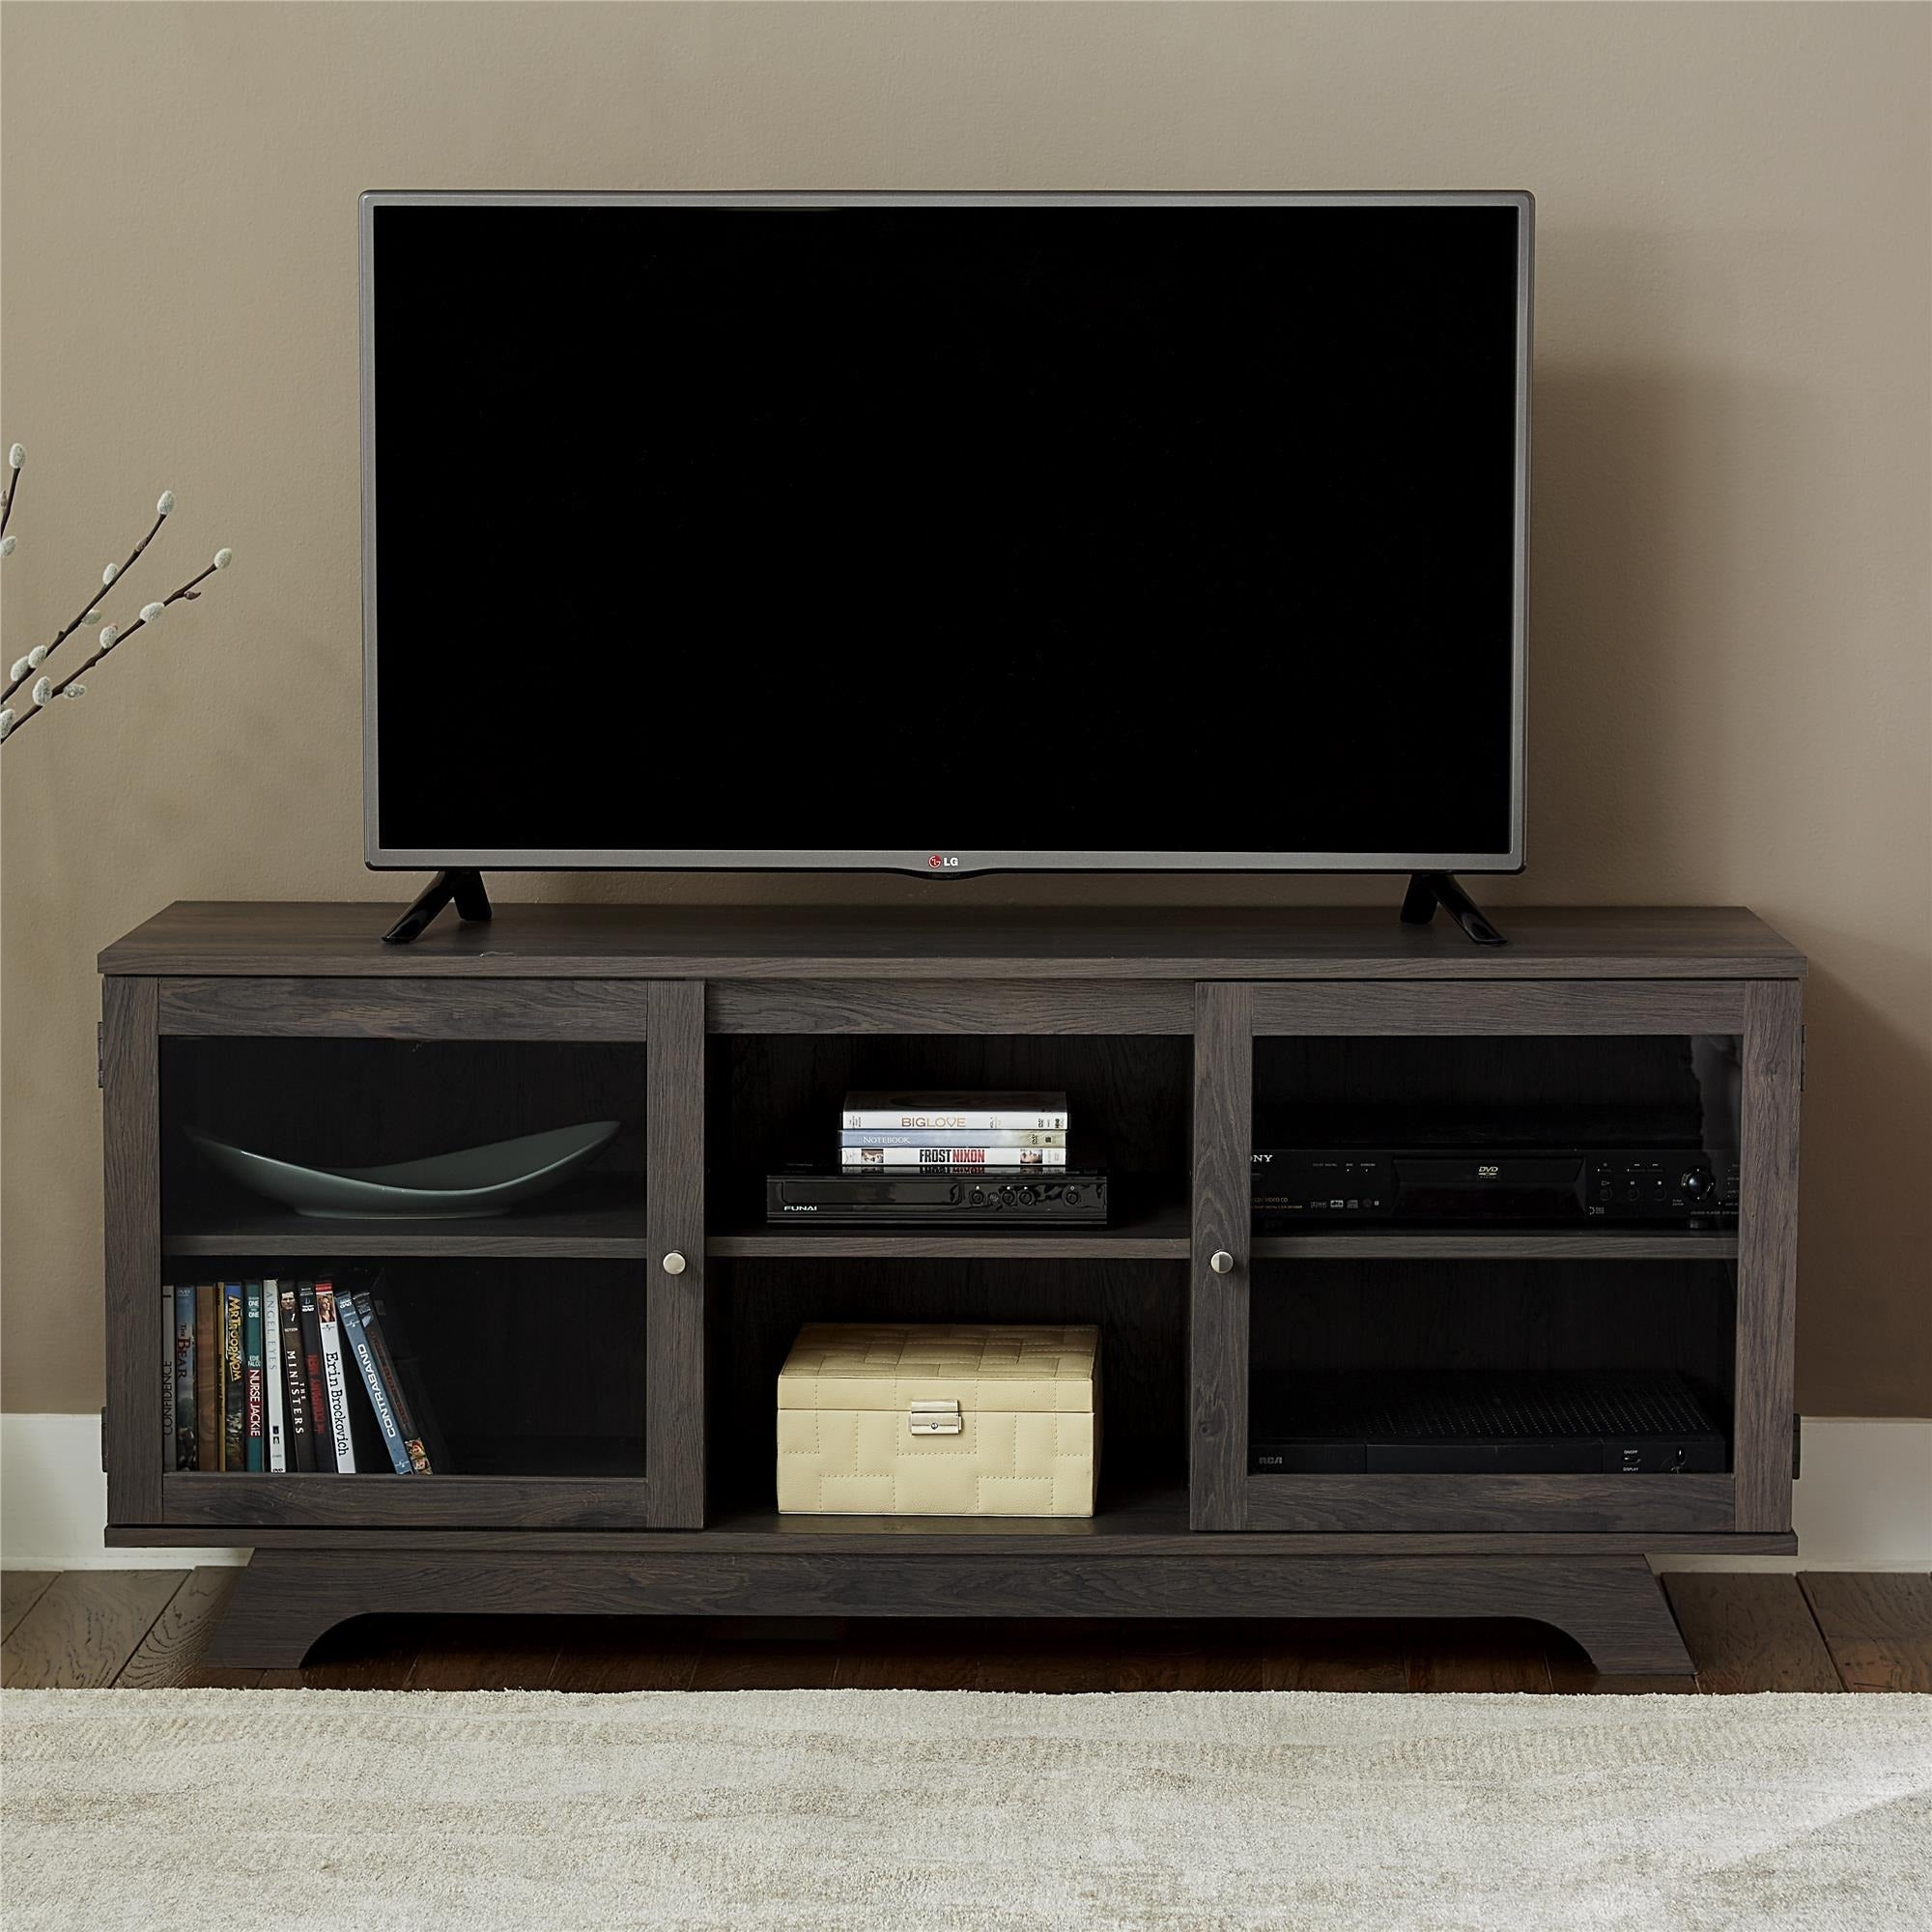 Beau Shop Ameriwood Home Englewood Weathered Oak 55 Inch TV Stand   On Sale    Free Shipping Today   Overstock.com   12039210